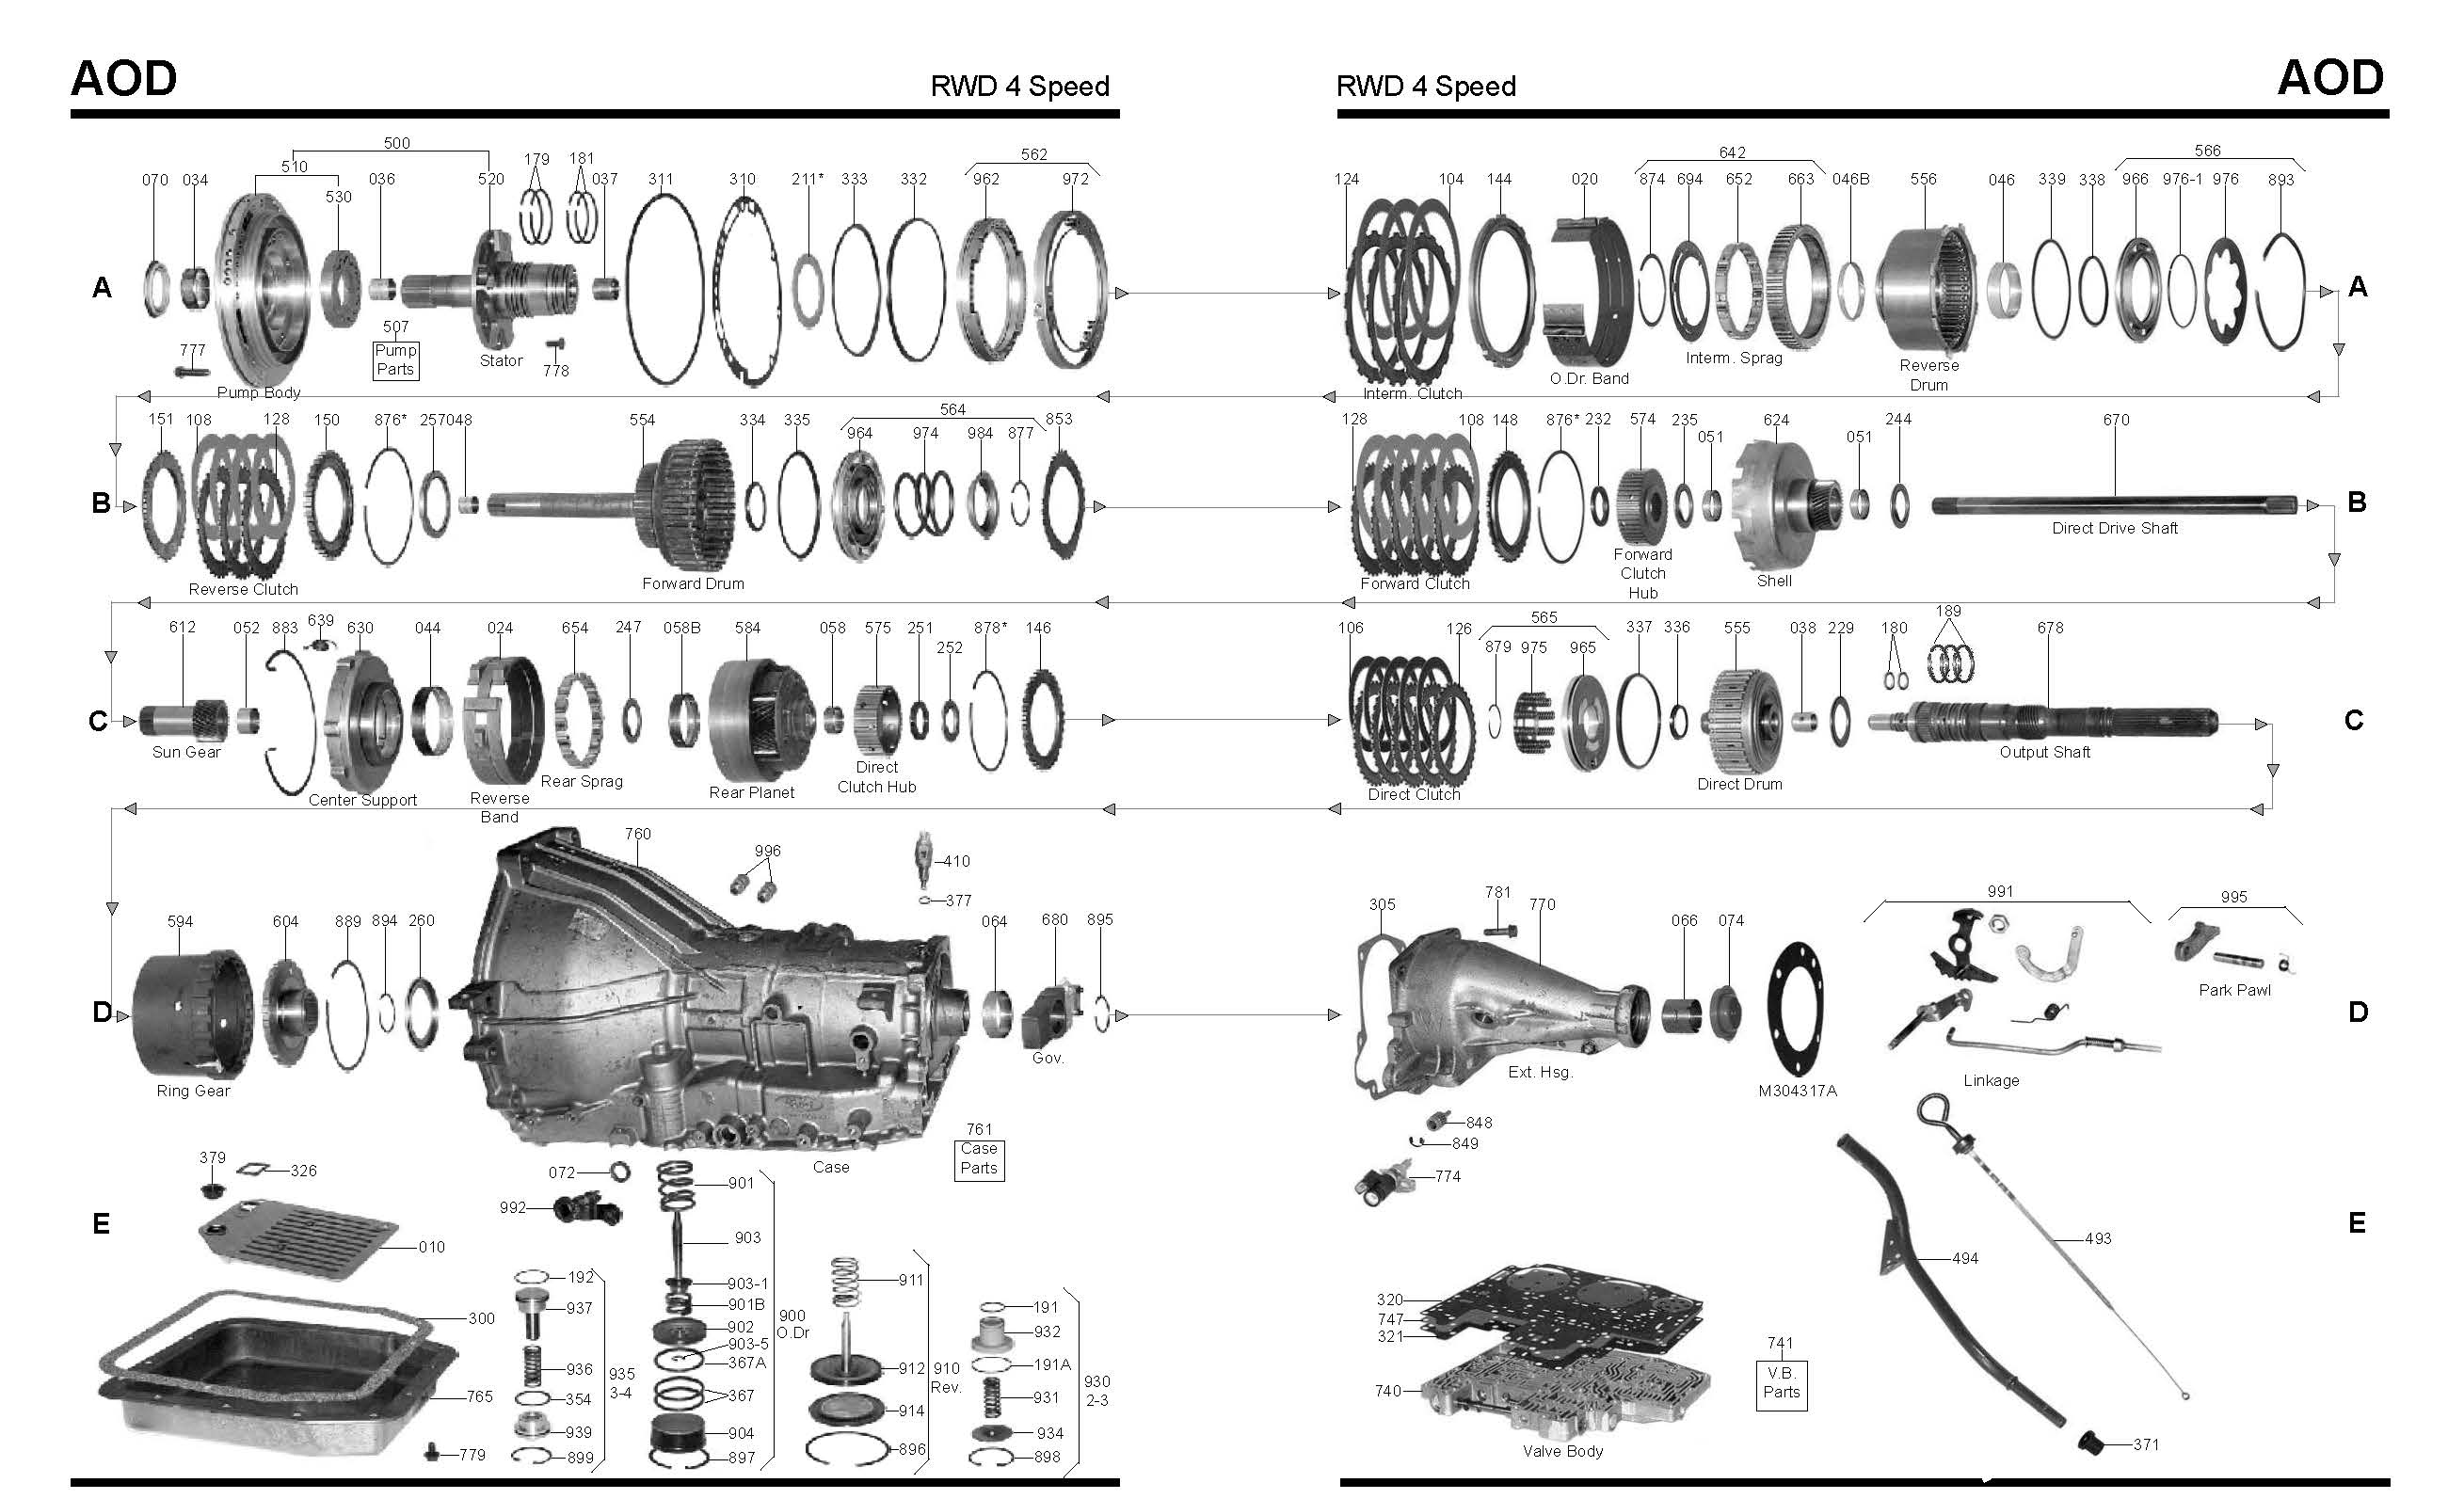 aod pump diagram ford aod transmission master rebuild kit from alto stage 3 ... aod harness diagram